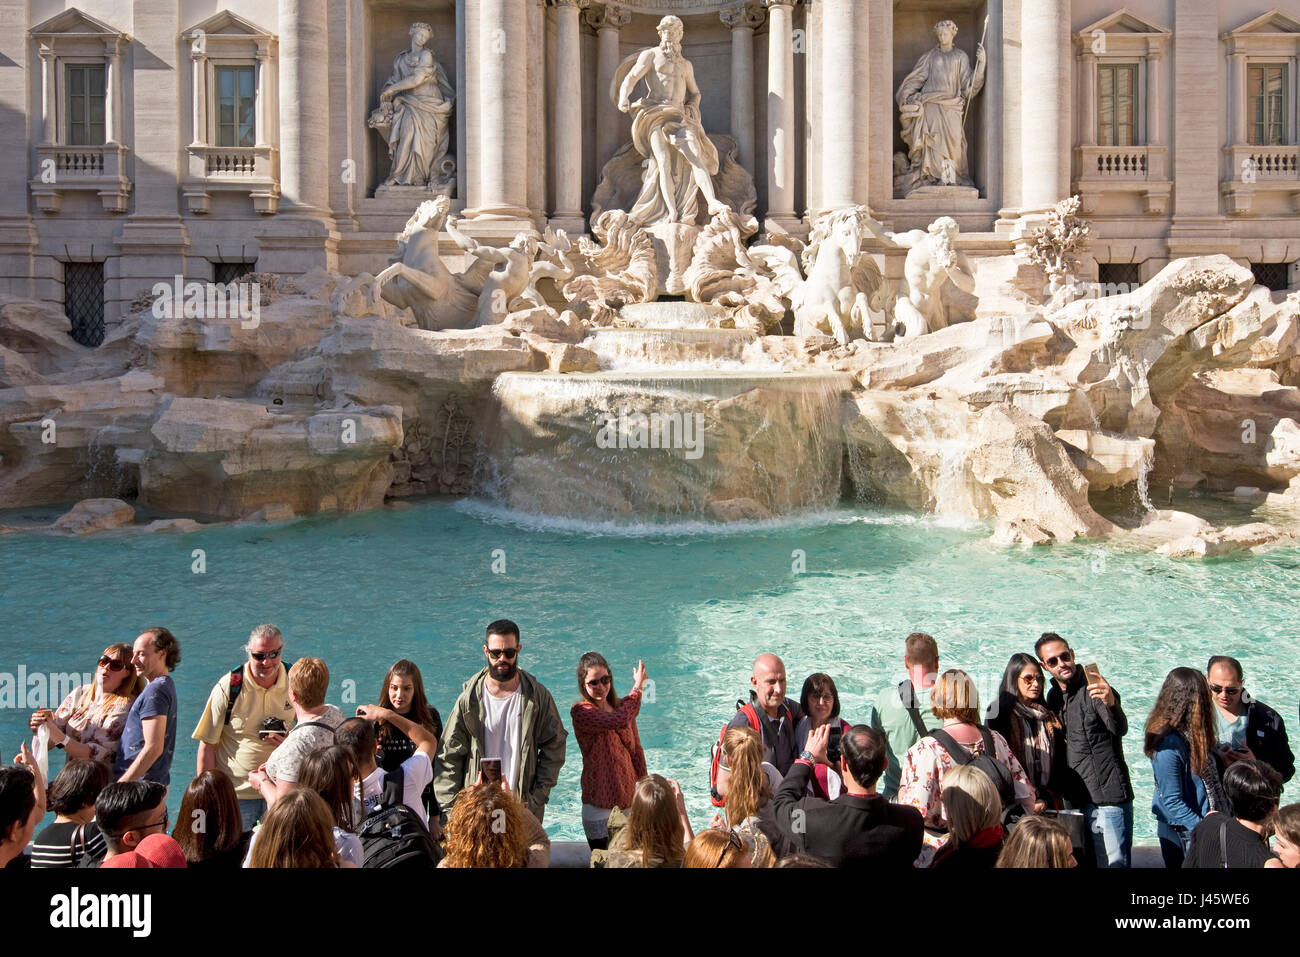 "The Trevi Fountain ""Fontana di Trevi"" in Rome with crowds of tourists and visitors on a sunny day with blue sky. Stock Photo"